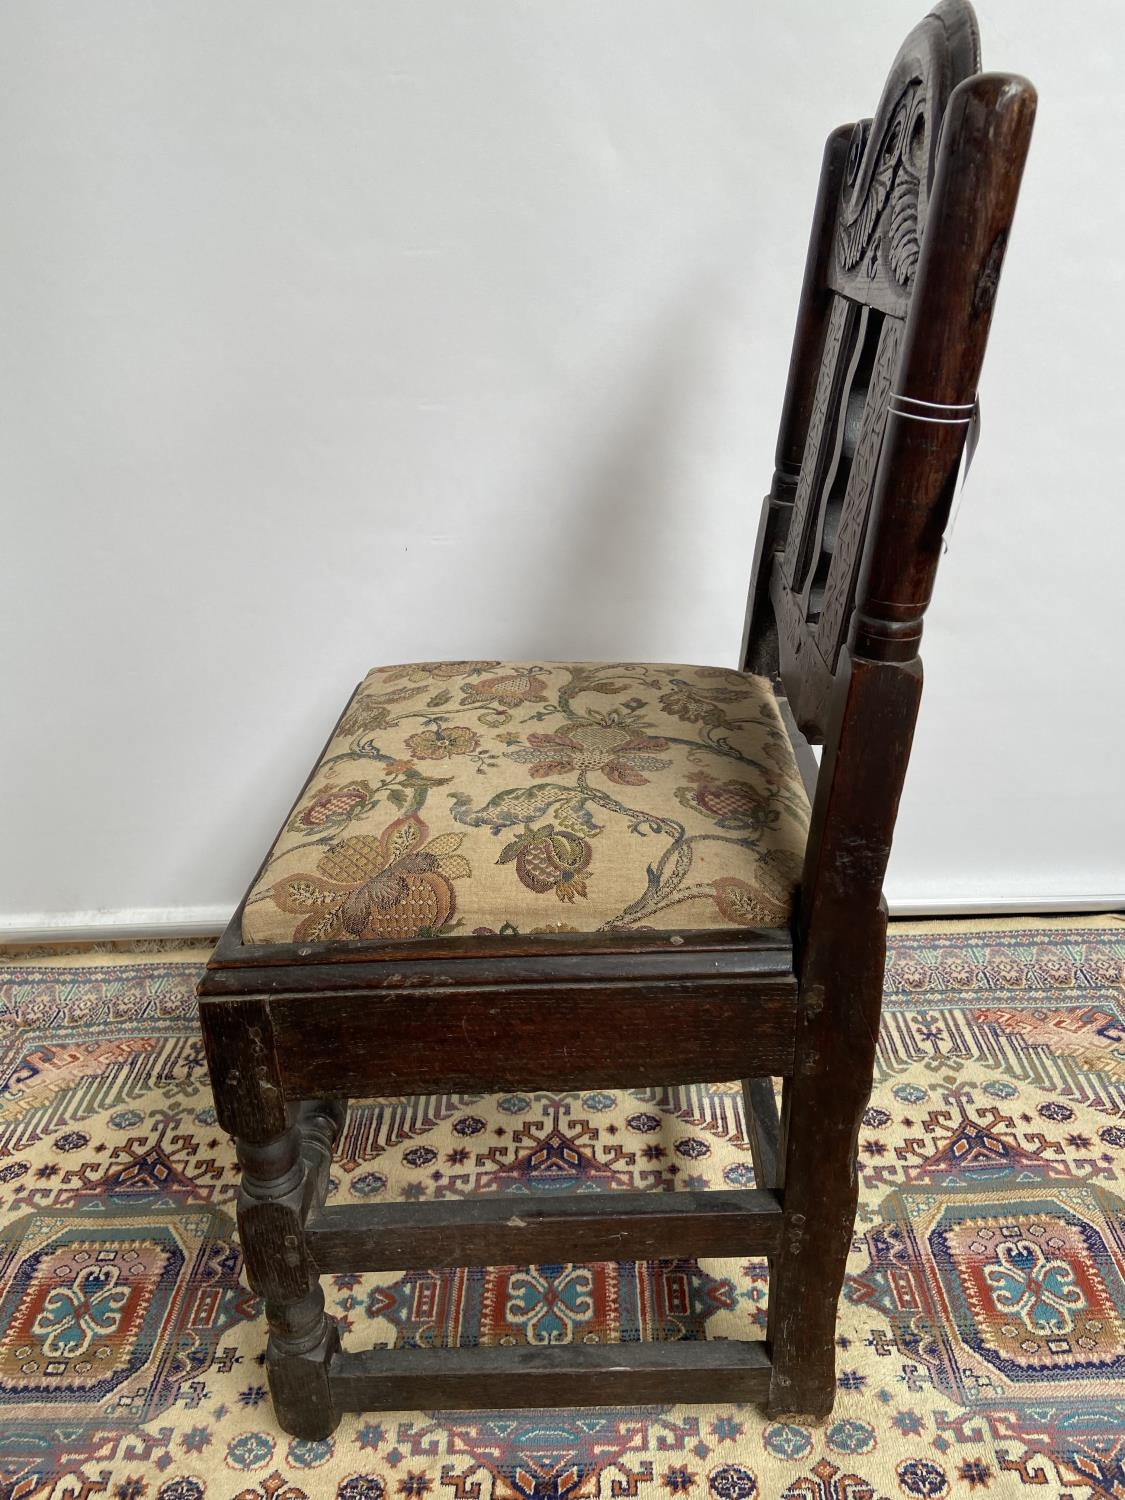 French carved walnut side chair [early 18th century] with a scroll-carved top rail above carved wavy - Image 3 of 6